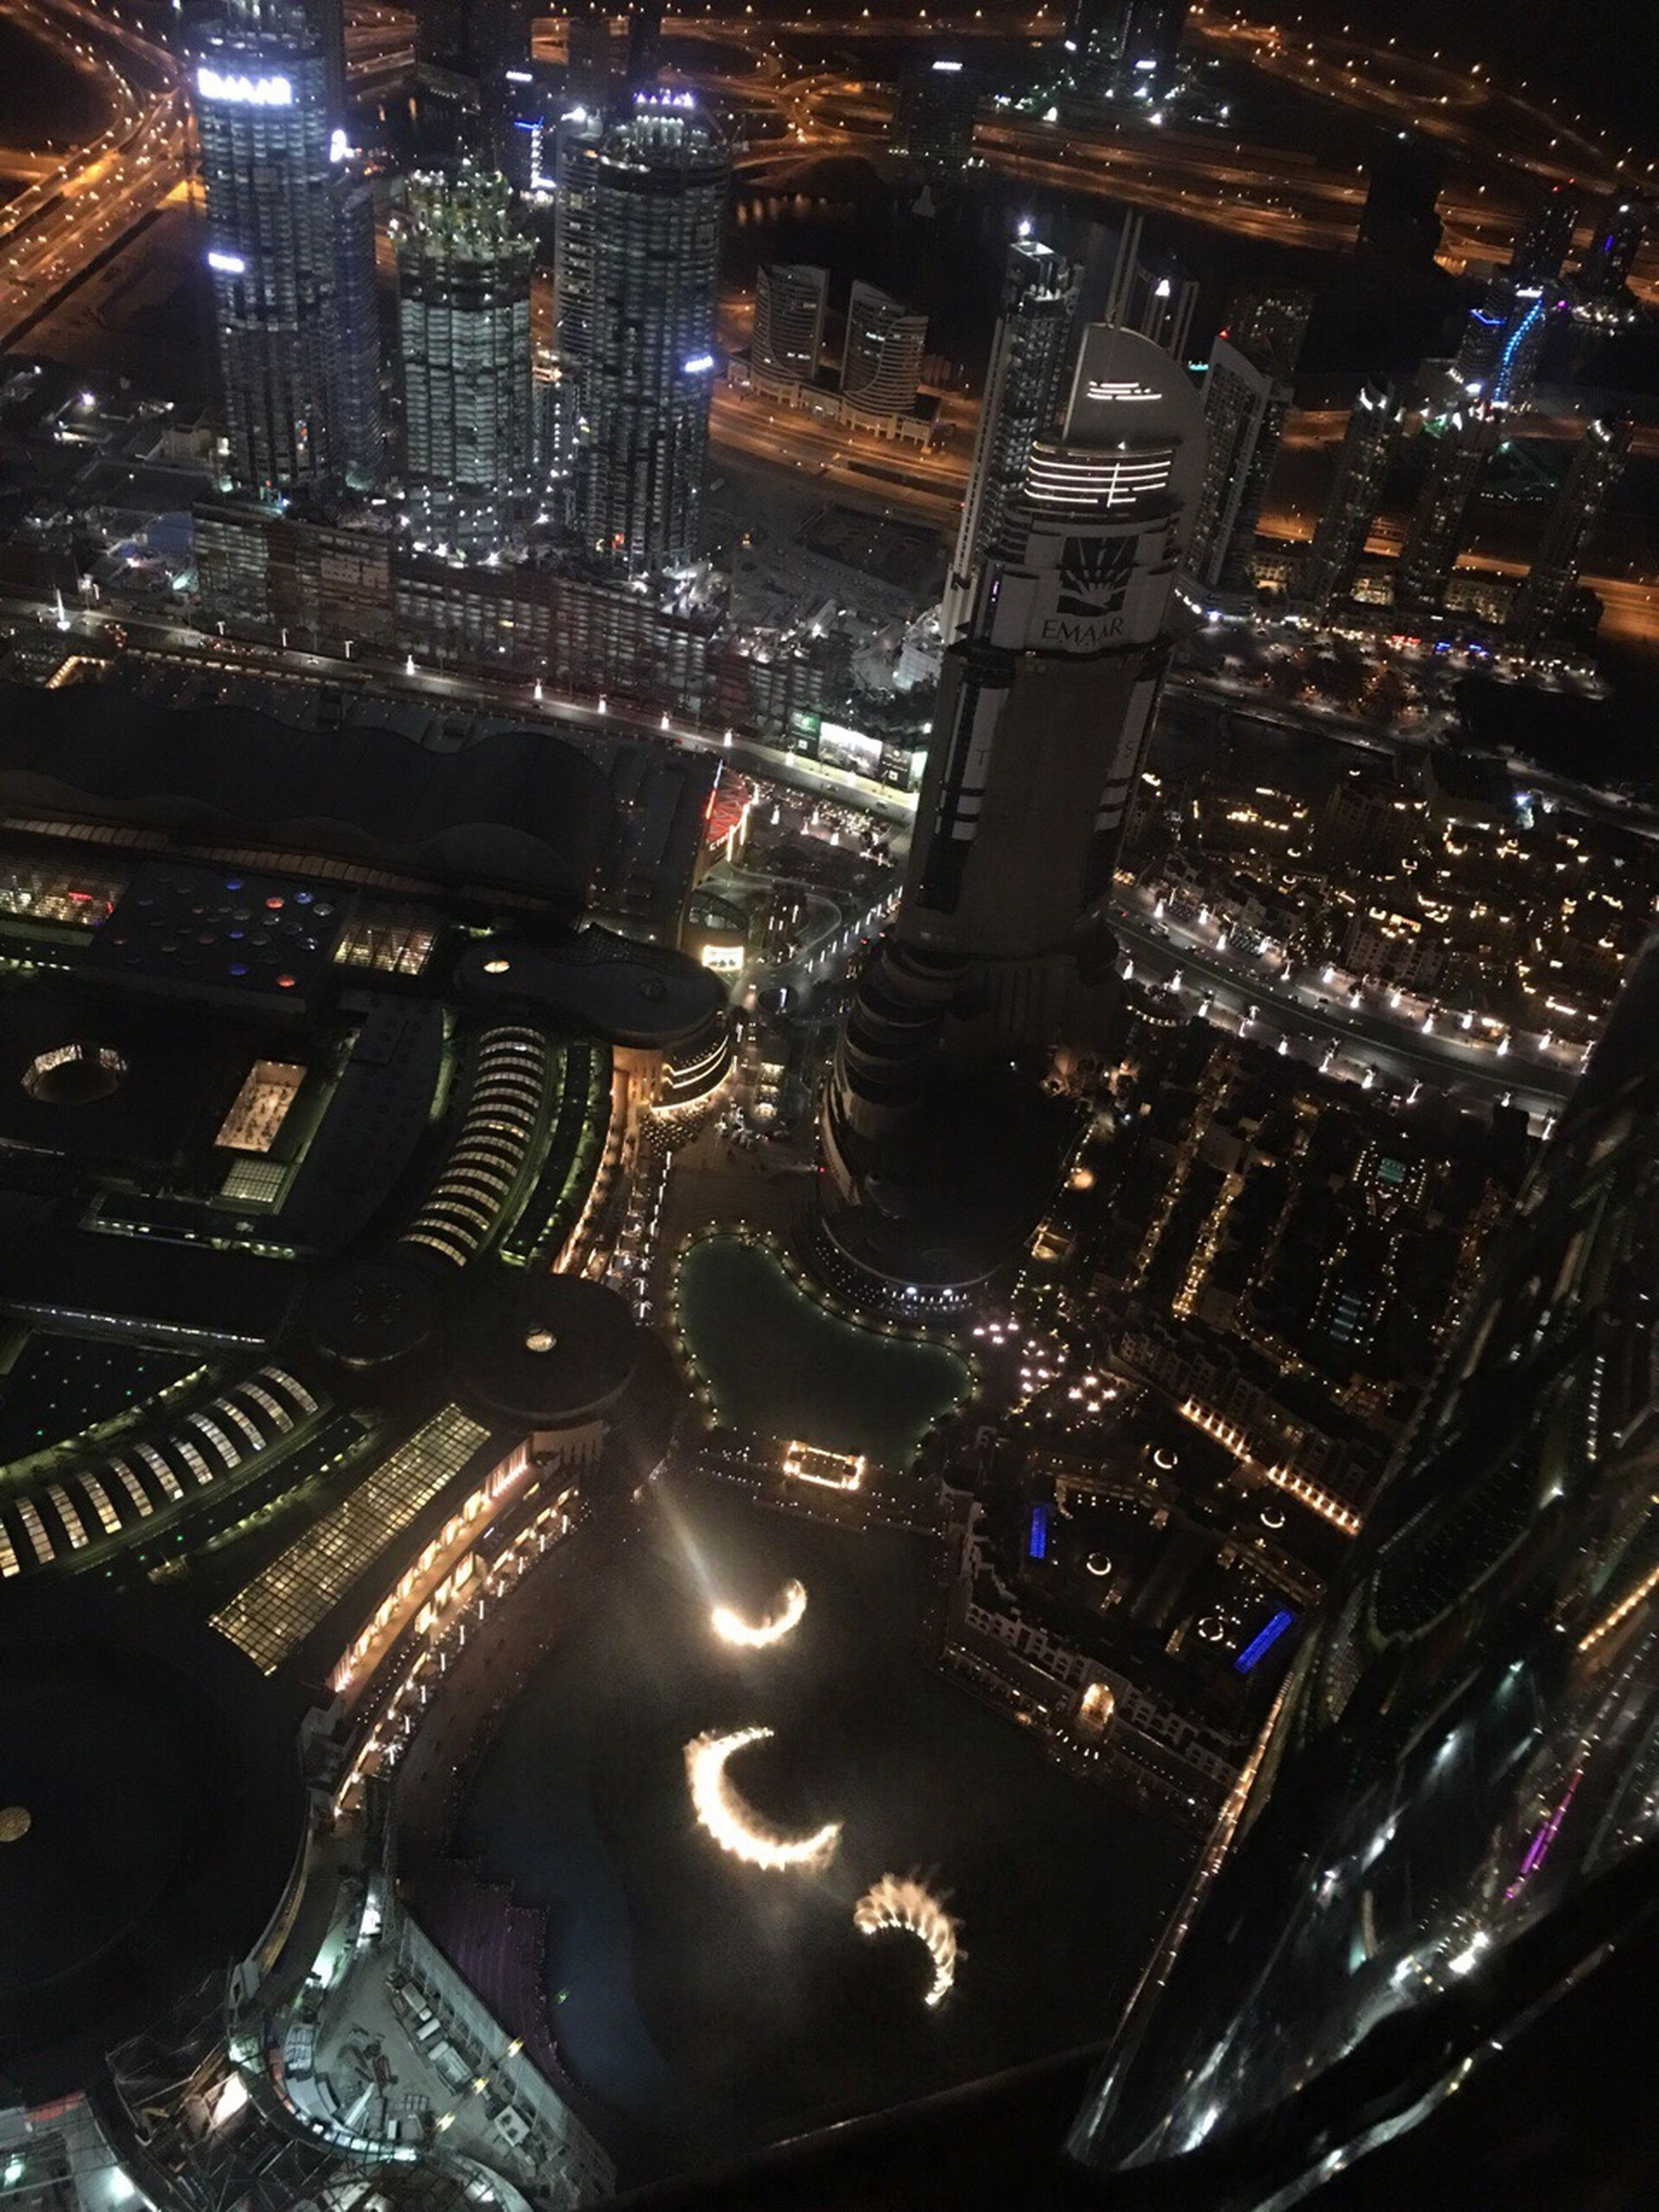 architecture, illuminated, building exterior, city, night, cityscape, built structure, high angle view, crowded, aerial view, city life, skyscraper, tall - high, tower, capital cities, residential district, street, road, office building, residential building